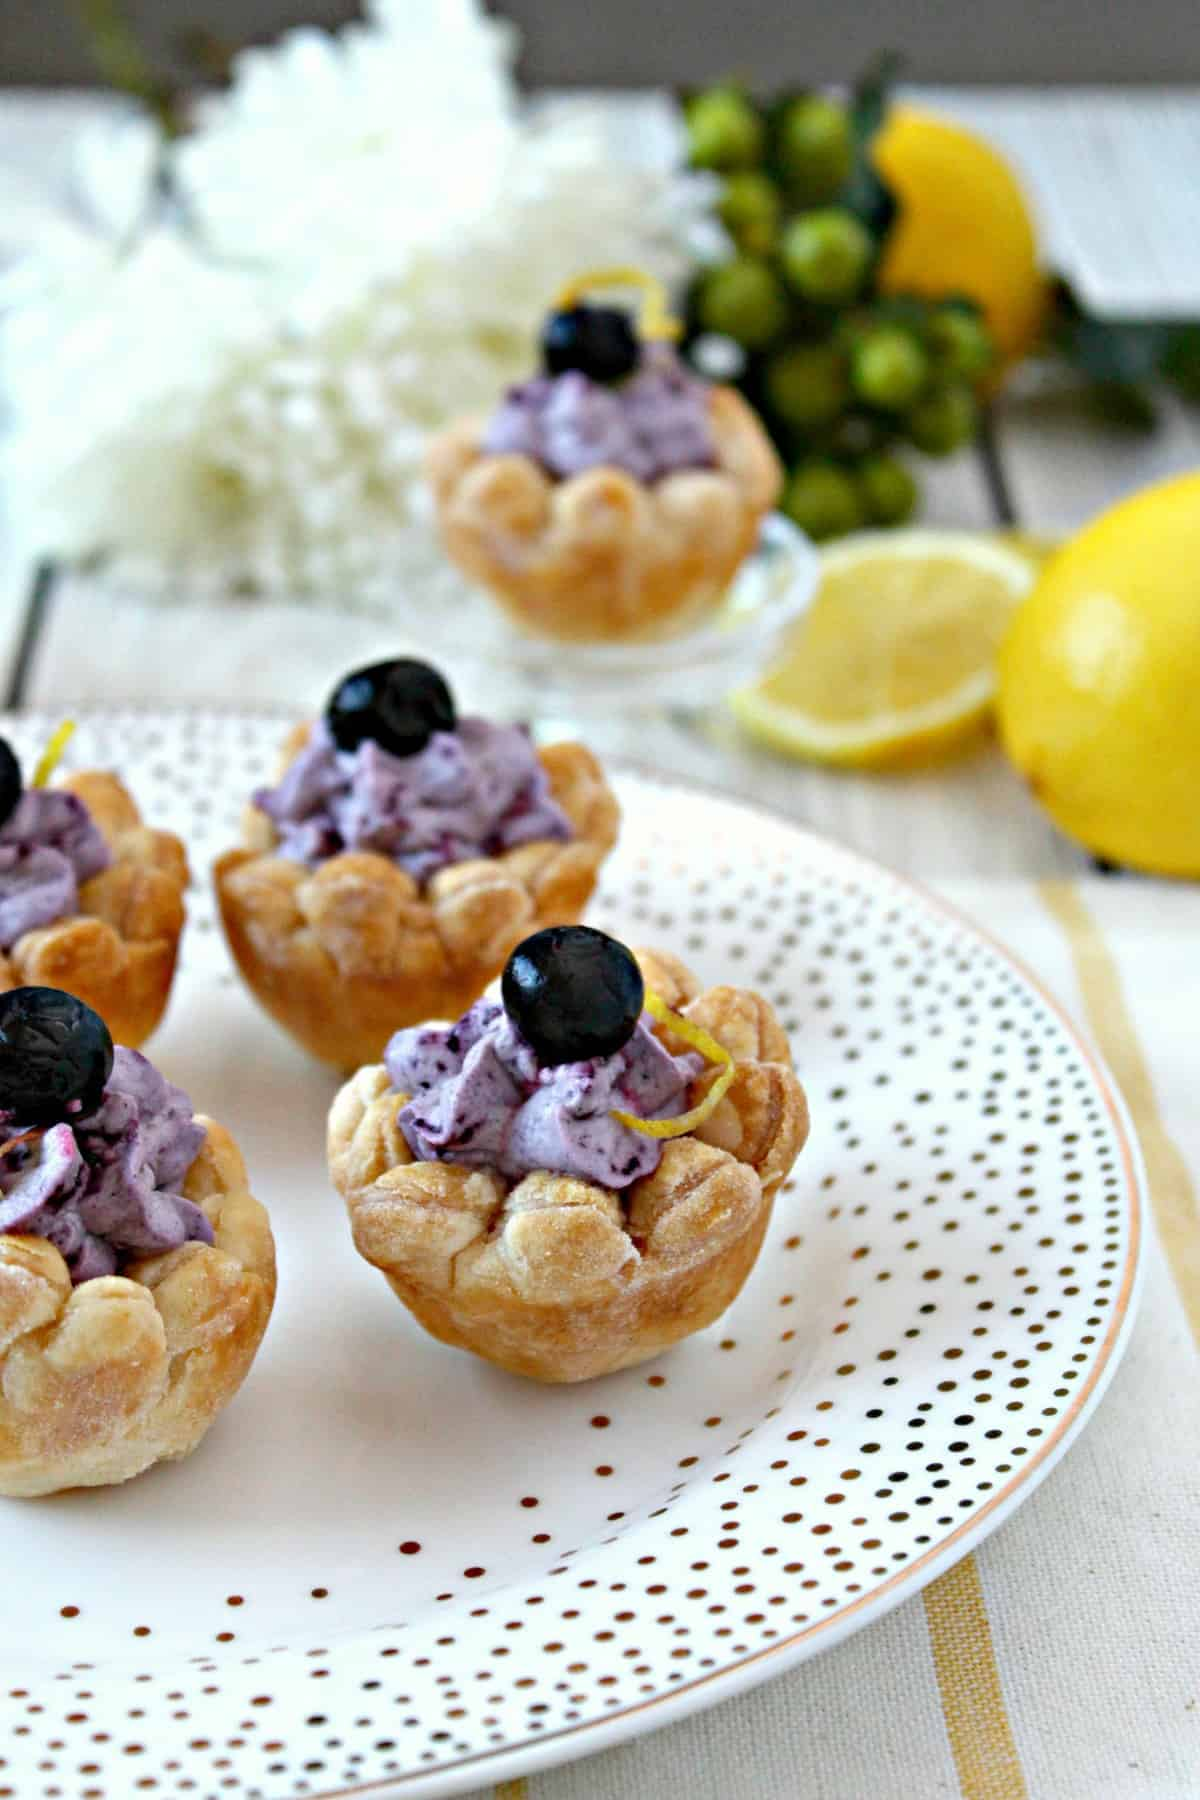 Light and creamy blueberry whipped filling delicately piped into a flaky puffed pastry blossom